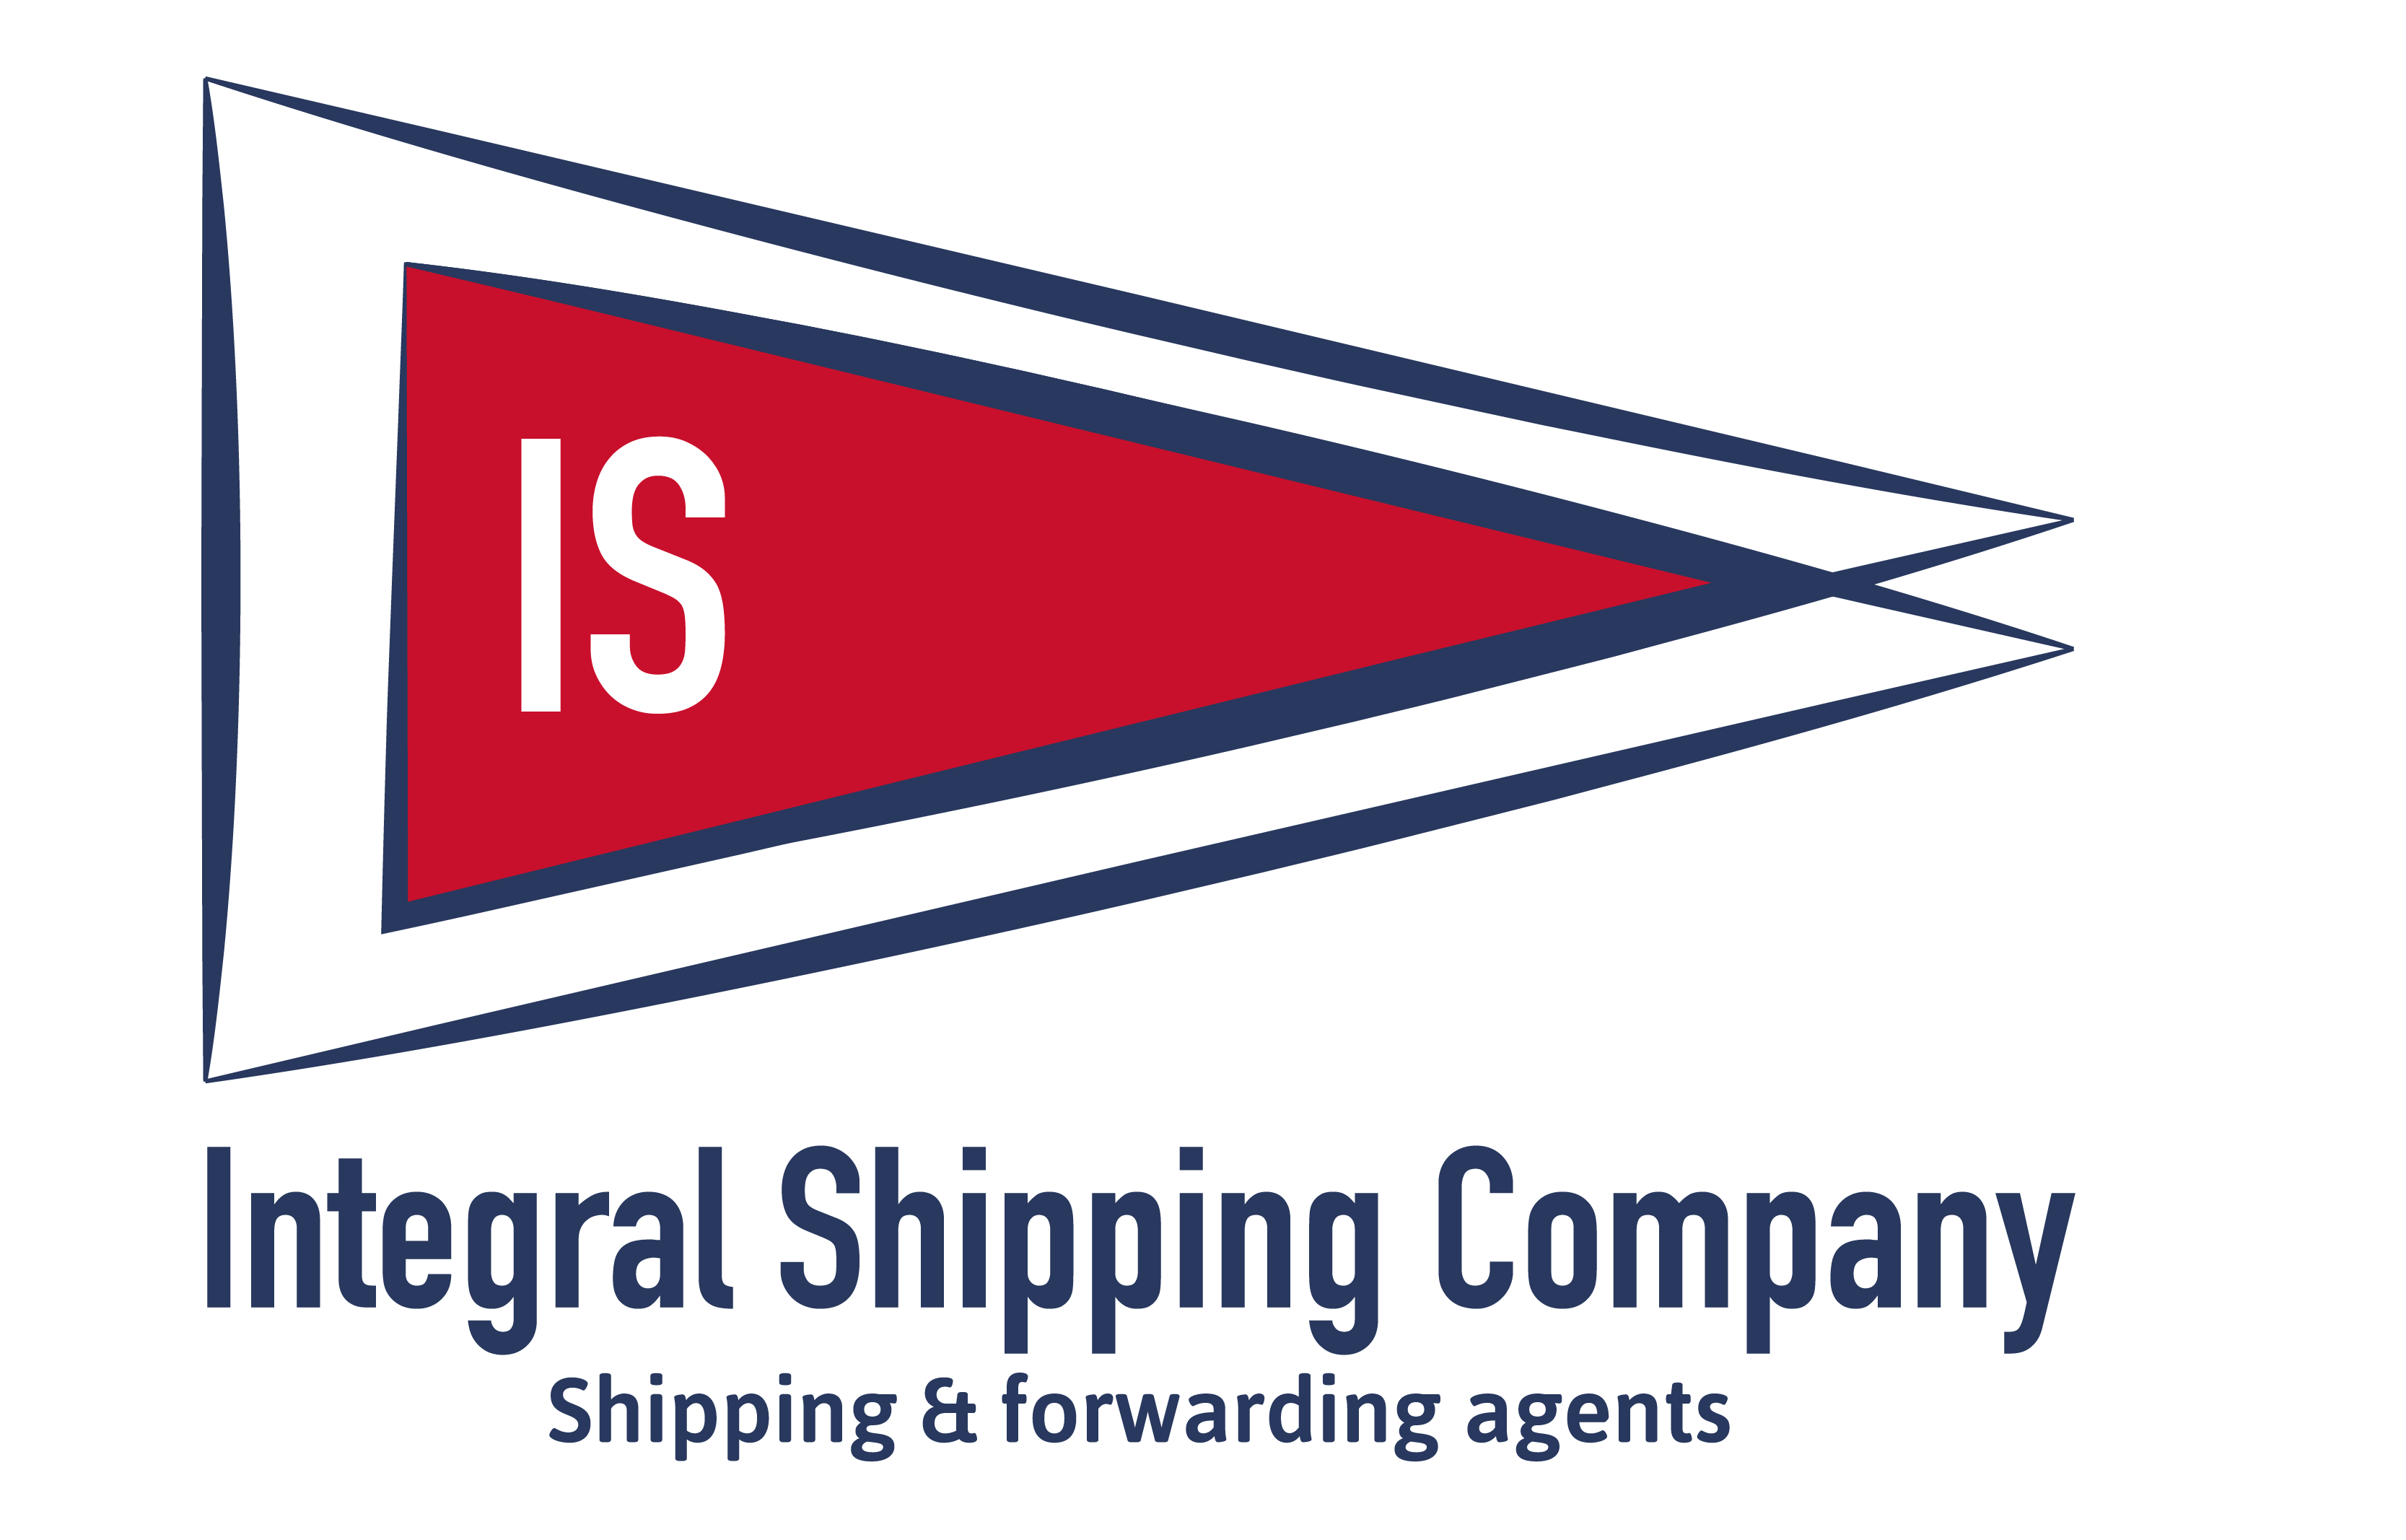 https://www.integralshipping.com